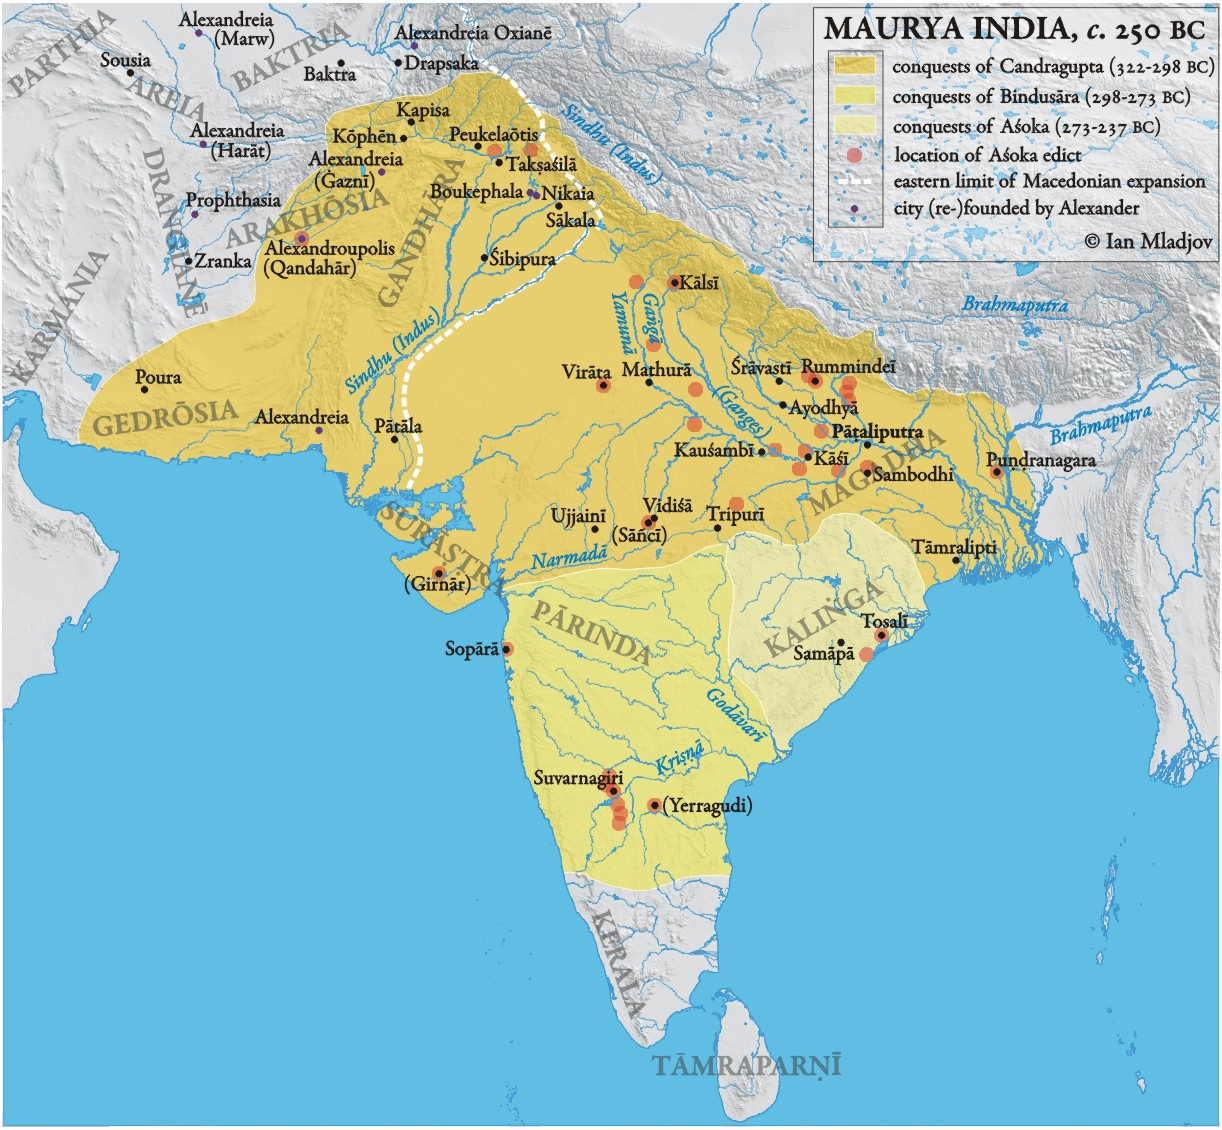 a comparison of imperial rome and the mauryan and gupta empire in india The most significant difference between imperial rome and mauryan/gupta india was imperial rome and maurya india were both rome, contained an empire.